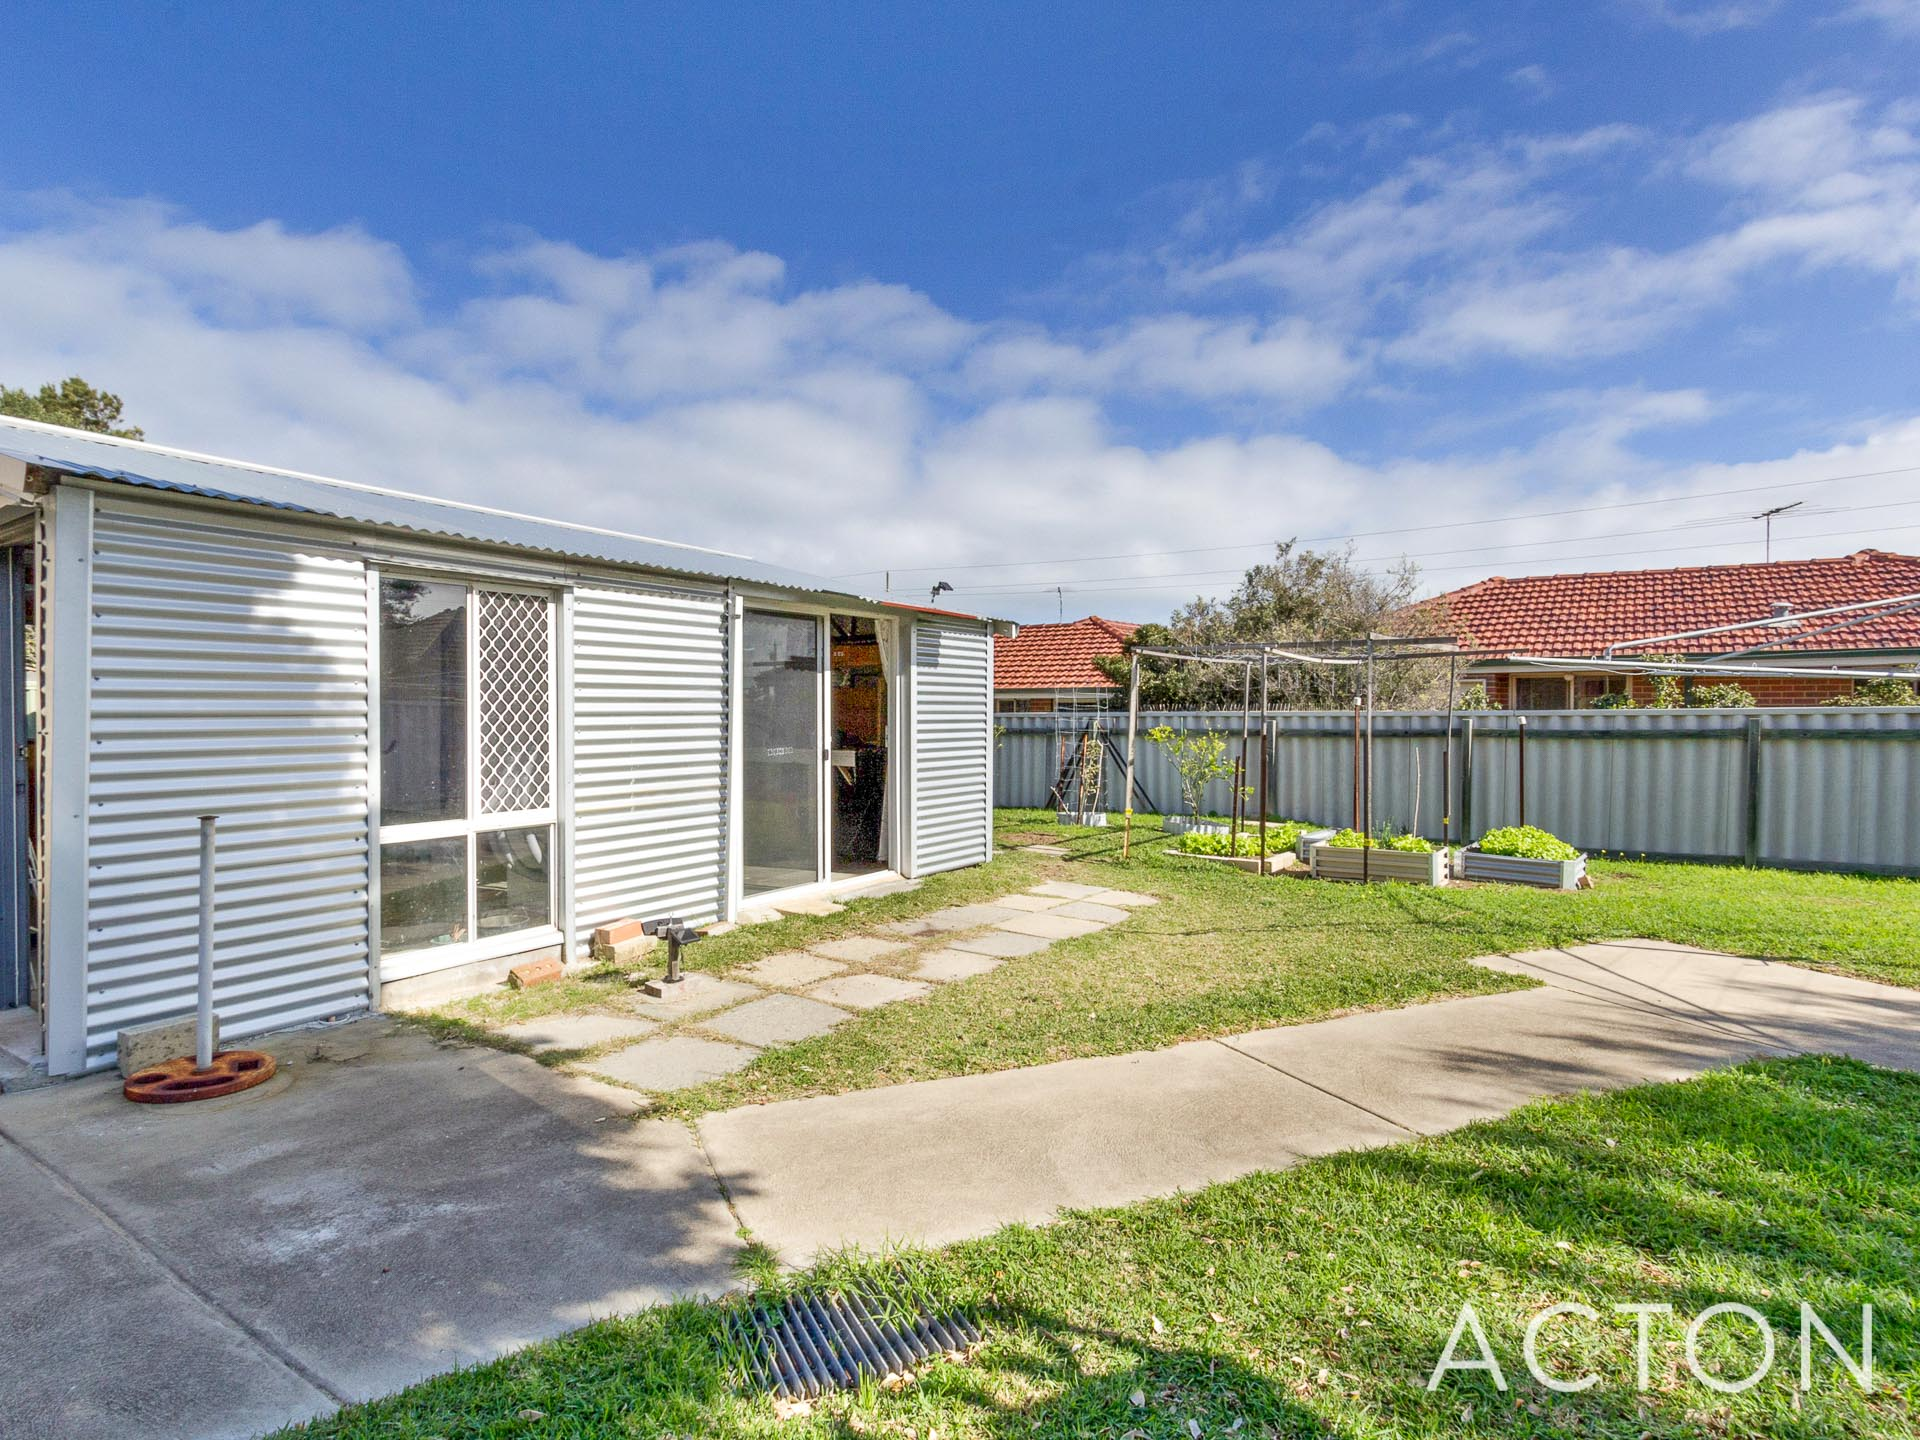 1 Newmarket Street Beaconsfield - House For Sale - 20747579 - Acton Fremantle